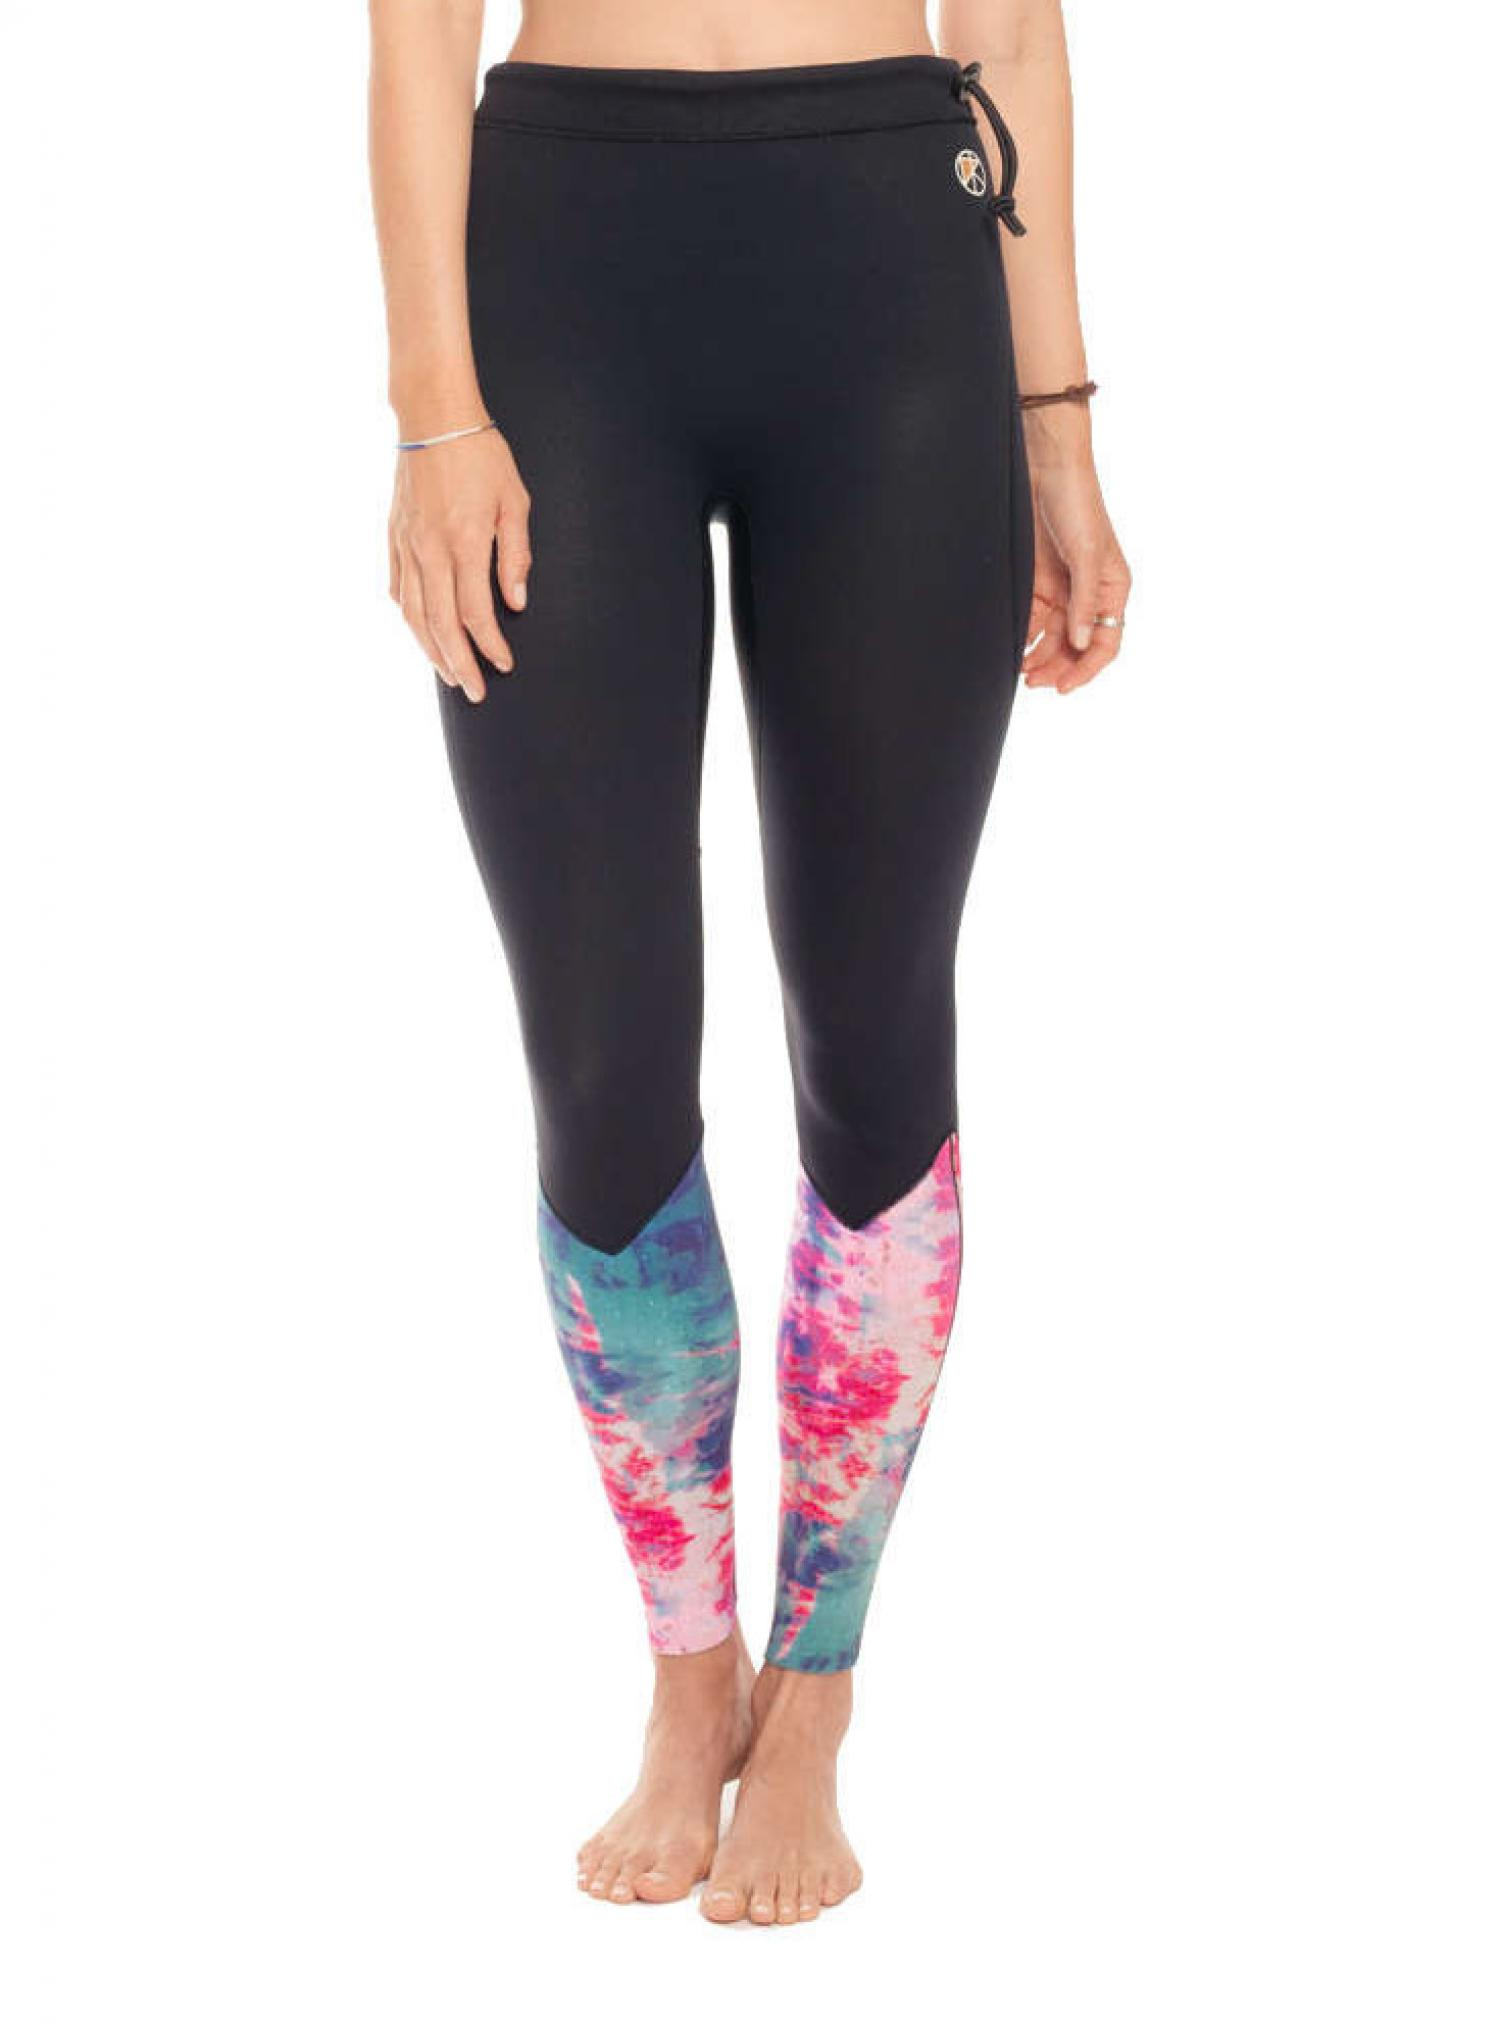 KASSIA + SURF  2MM REVERSIBLE SURF LEGGINGS  Pink-Turquoise